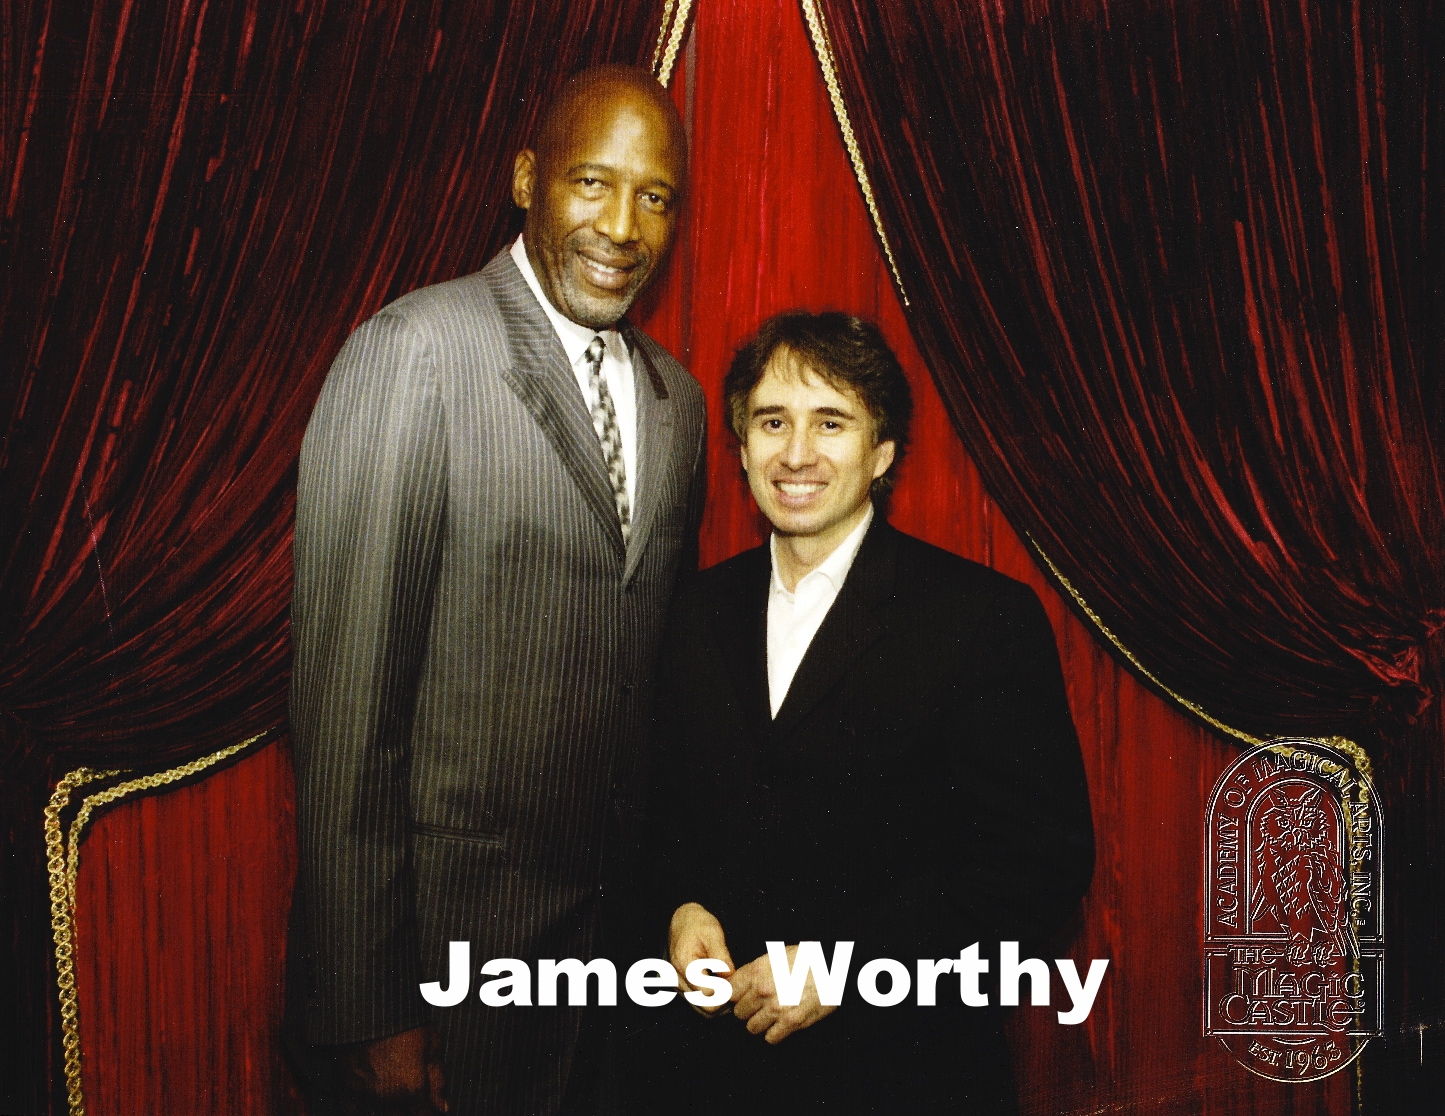 James Worthy with Magic Castle magician, Lou Serrano